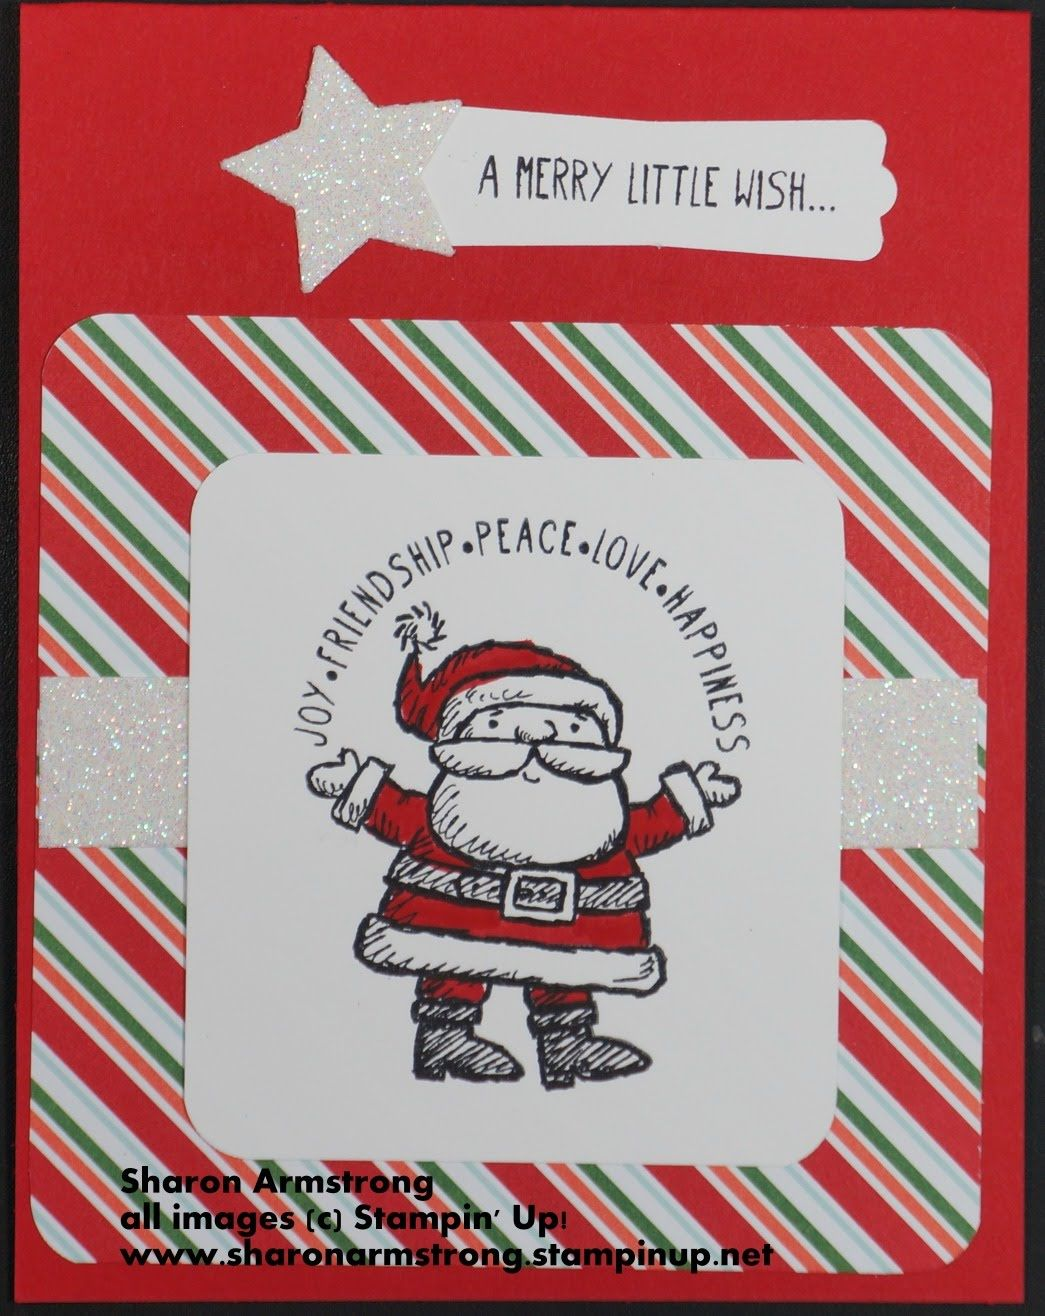 Get Your Santa On Christmas Card Online Class Card 3 of 6